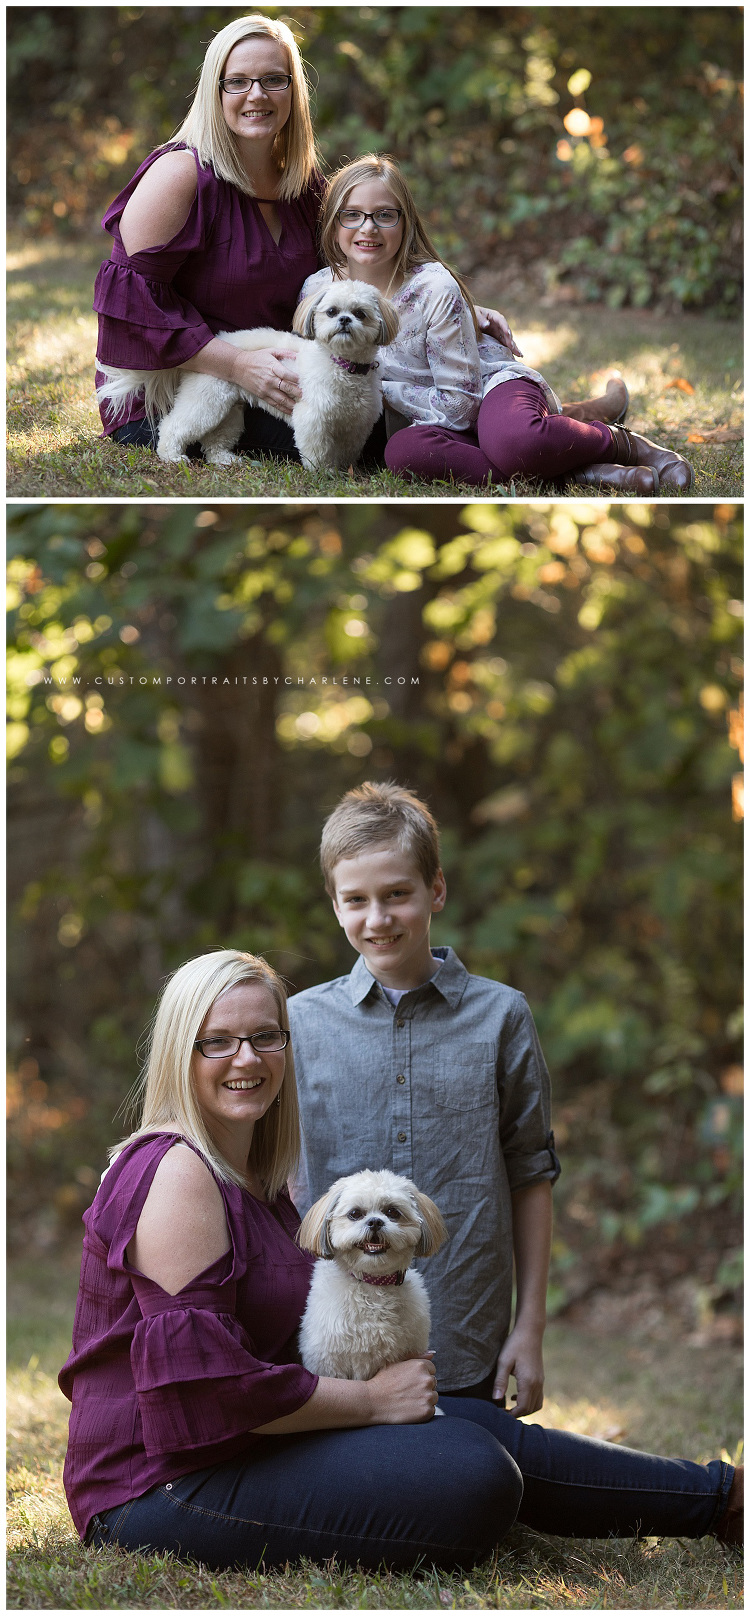 <alt> Mother Daughter Mother Son Dog Portrait Session Pittsburgh Family Outdoors Sunshine Jeans Burgundy Shirt Burgundy Pants Glasses Boots Smiling Fun Smiles Nature Sunshine Outdoors <alt>